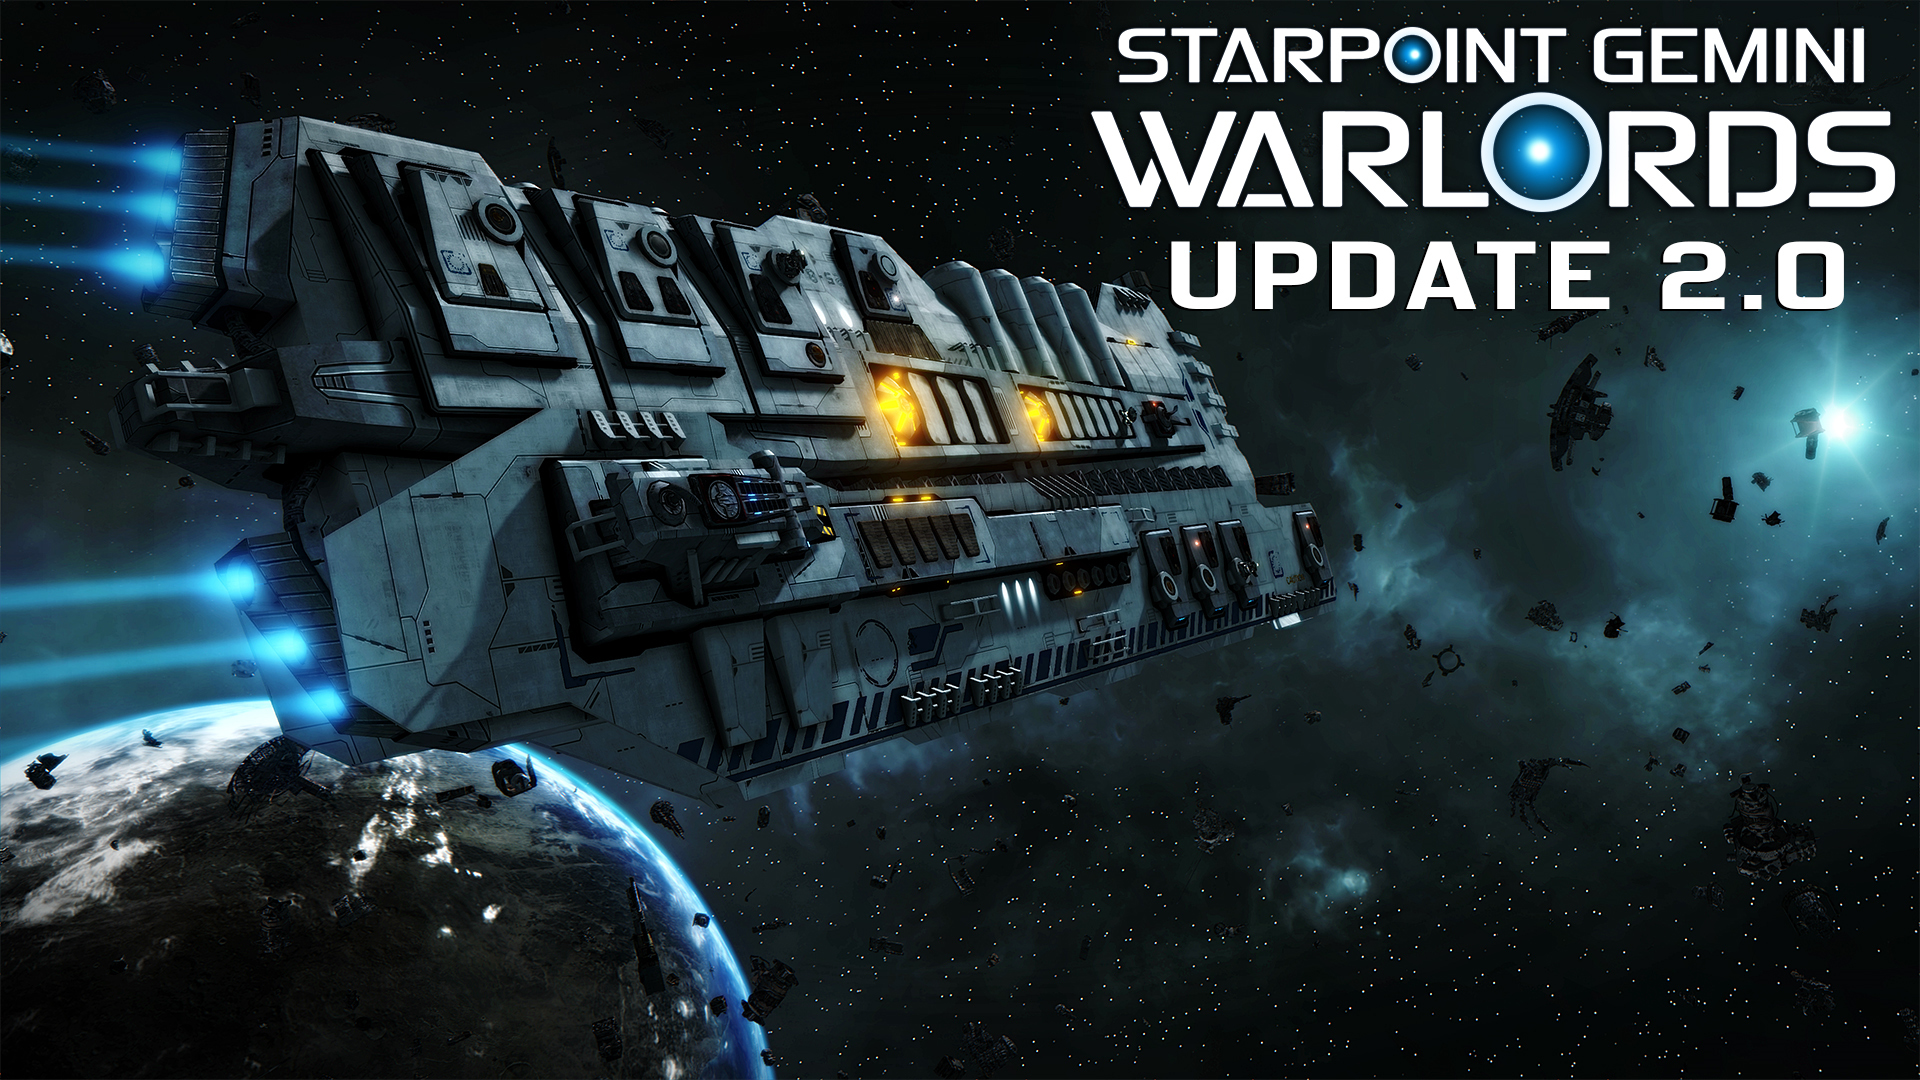 starpoint gemini warlords endpoint cheat engine